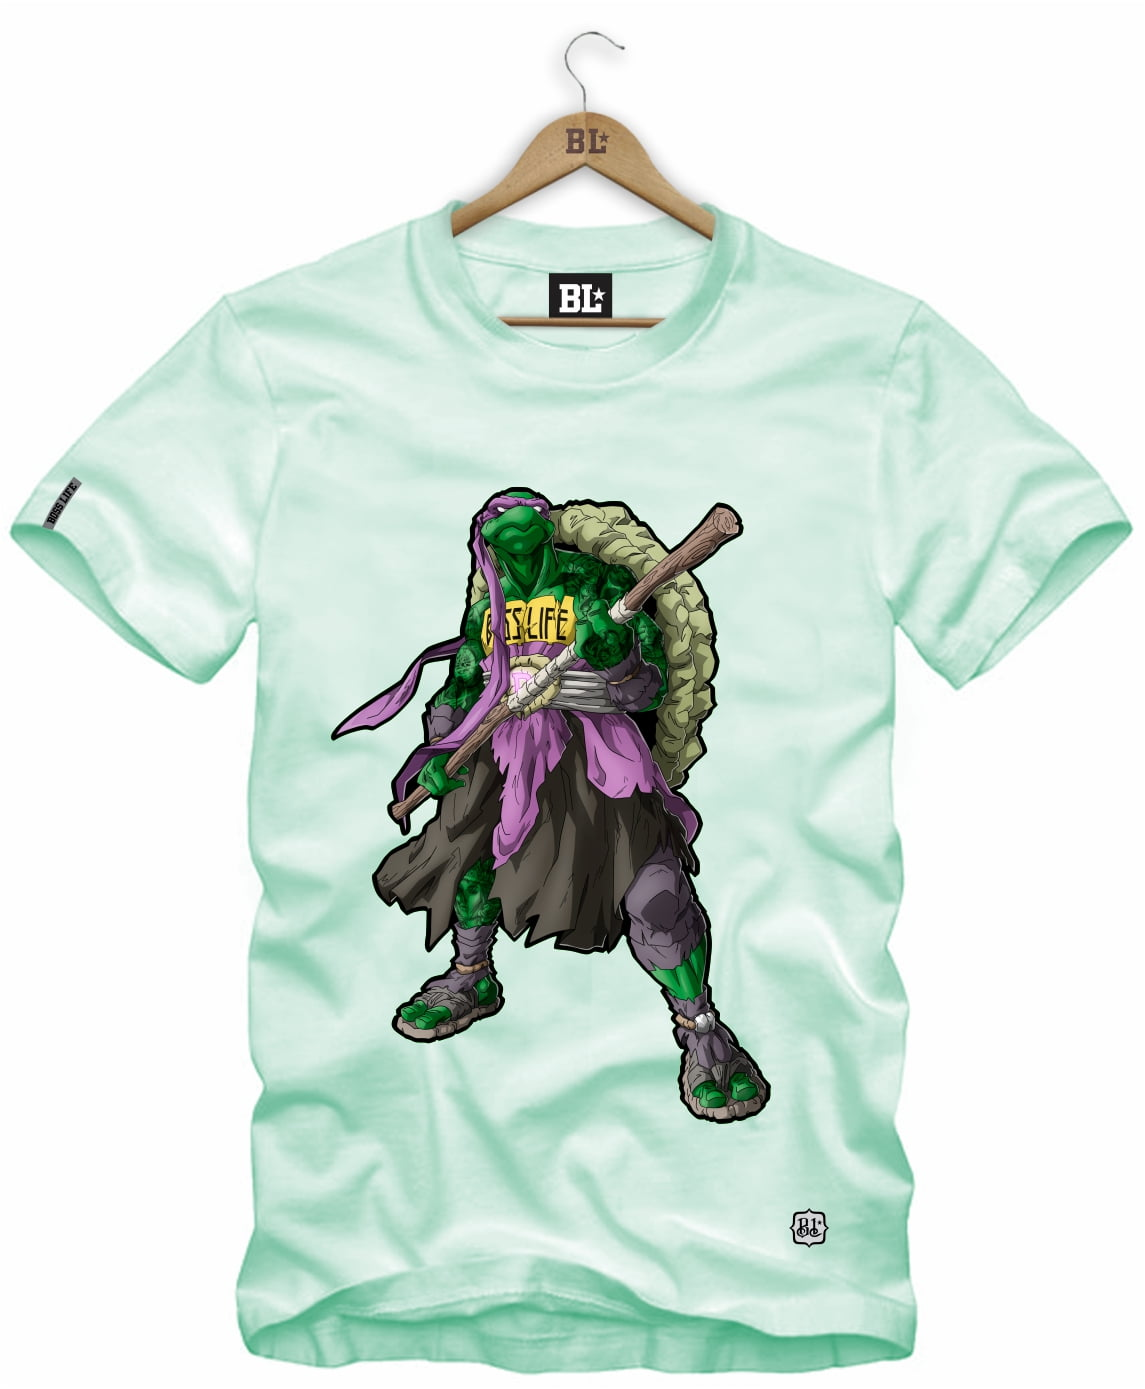 CAMISETA DONATELLO P AO GG5